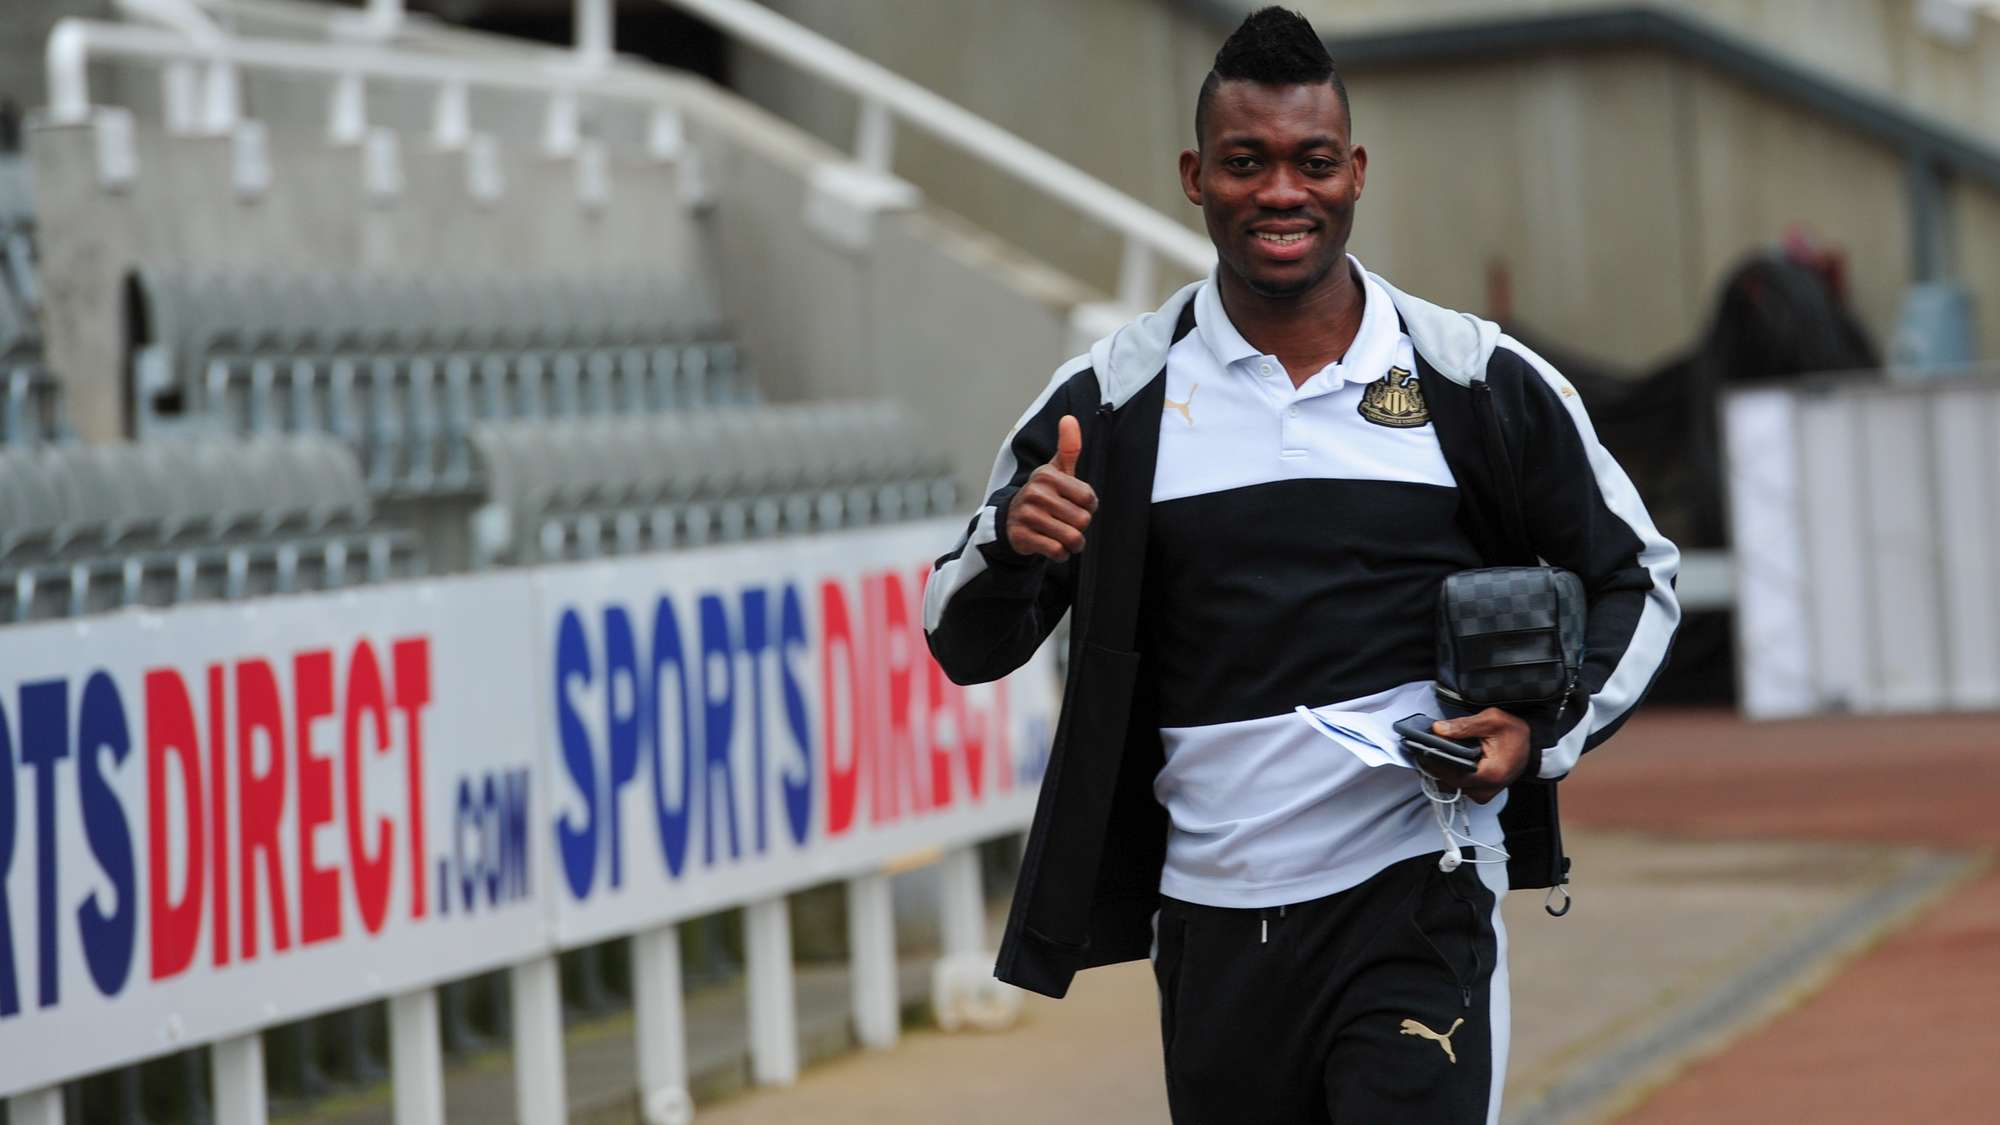 Injured Newcastle United winger Atsu ruled out of action for ONE week